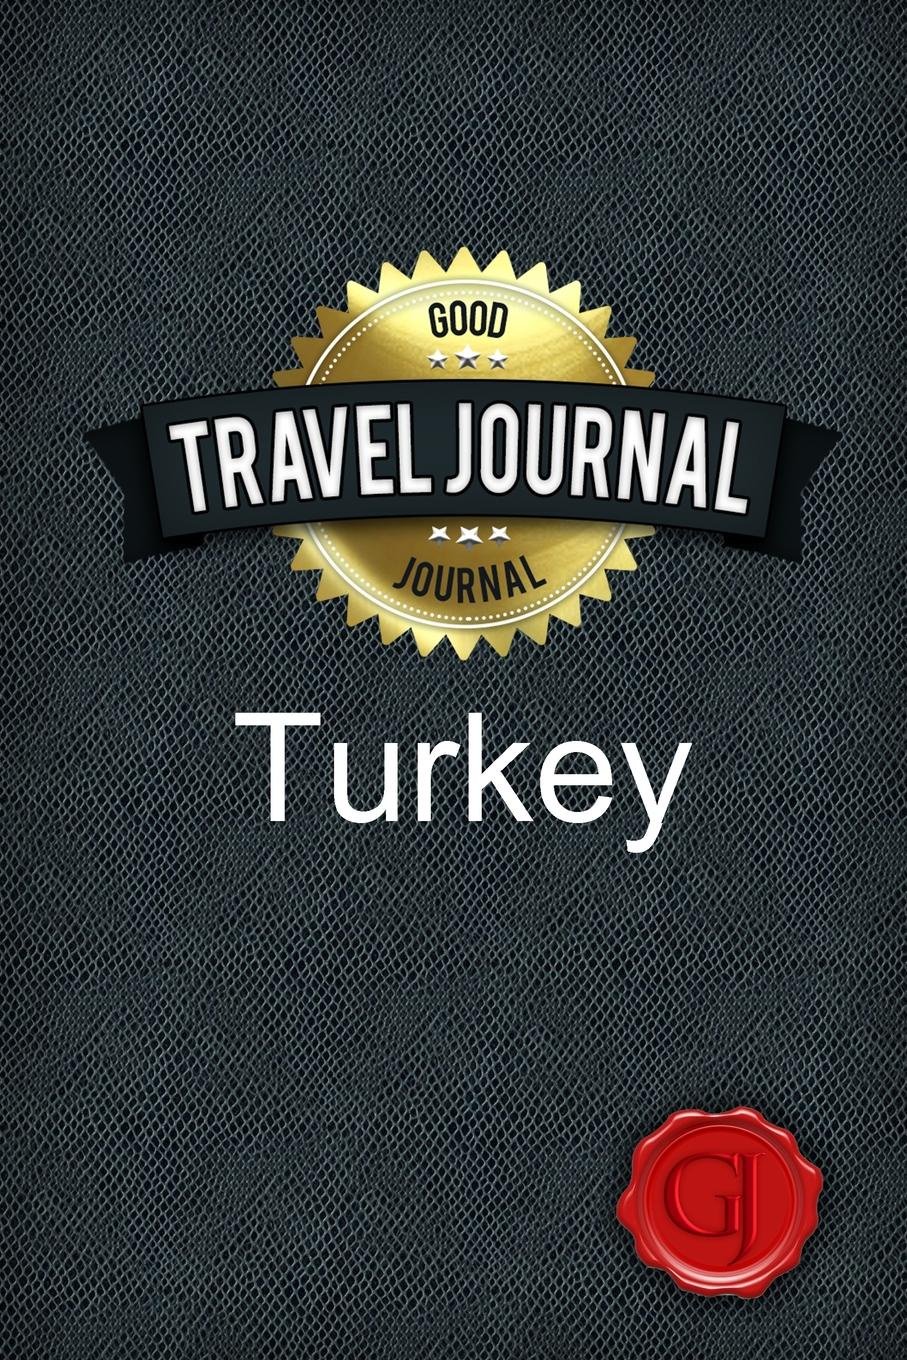 Good Journal Travel Journal Turkey